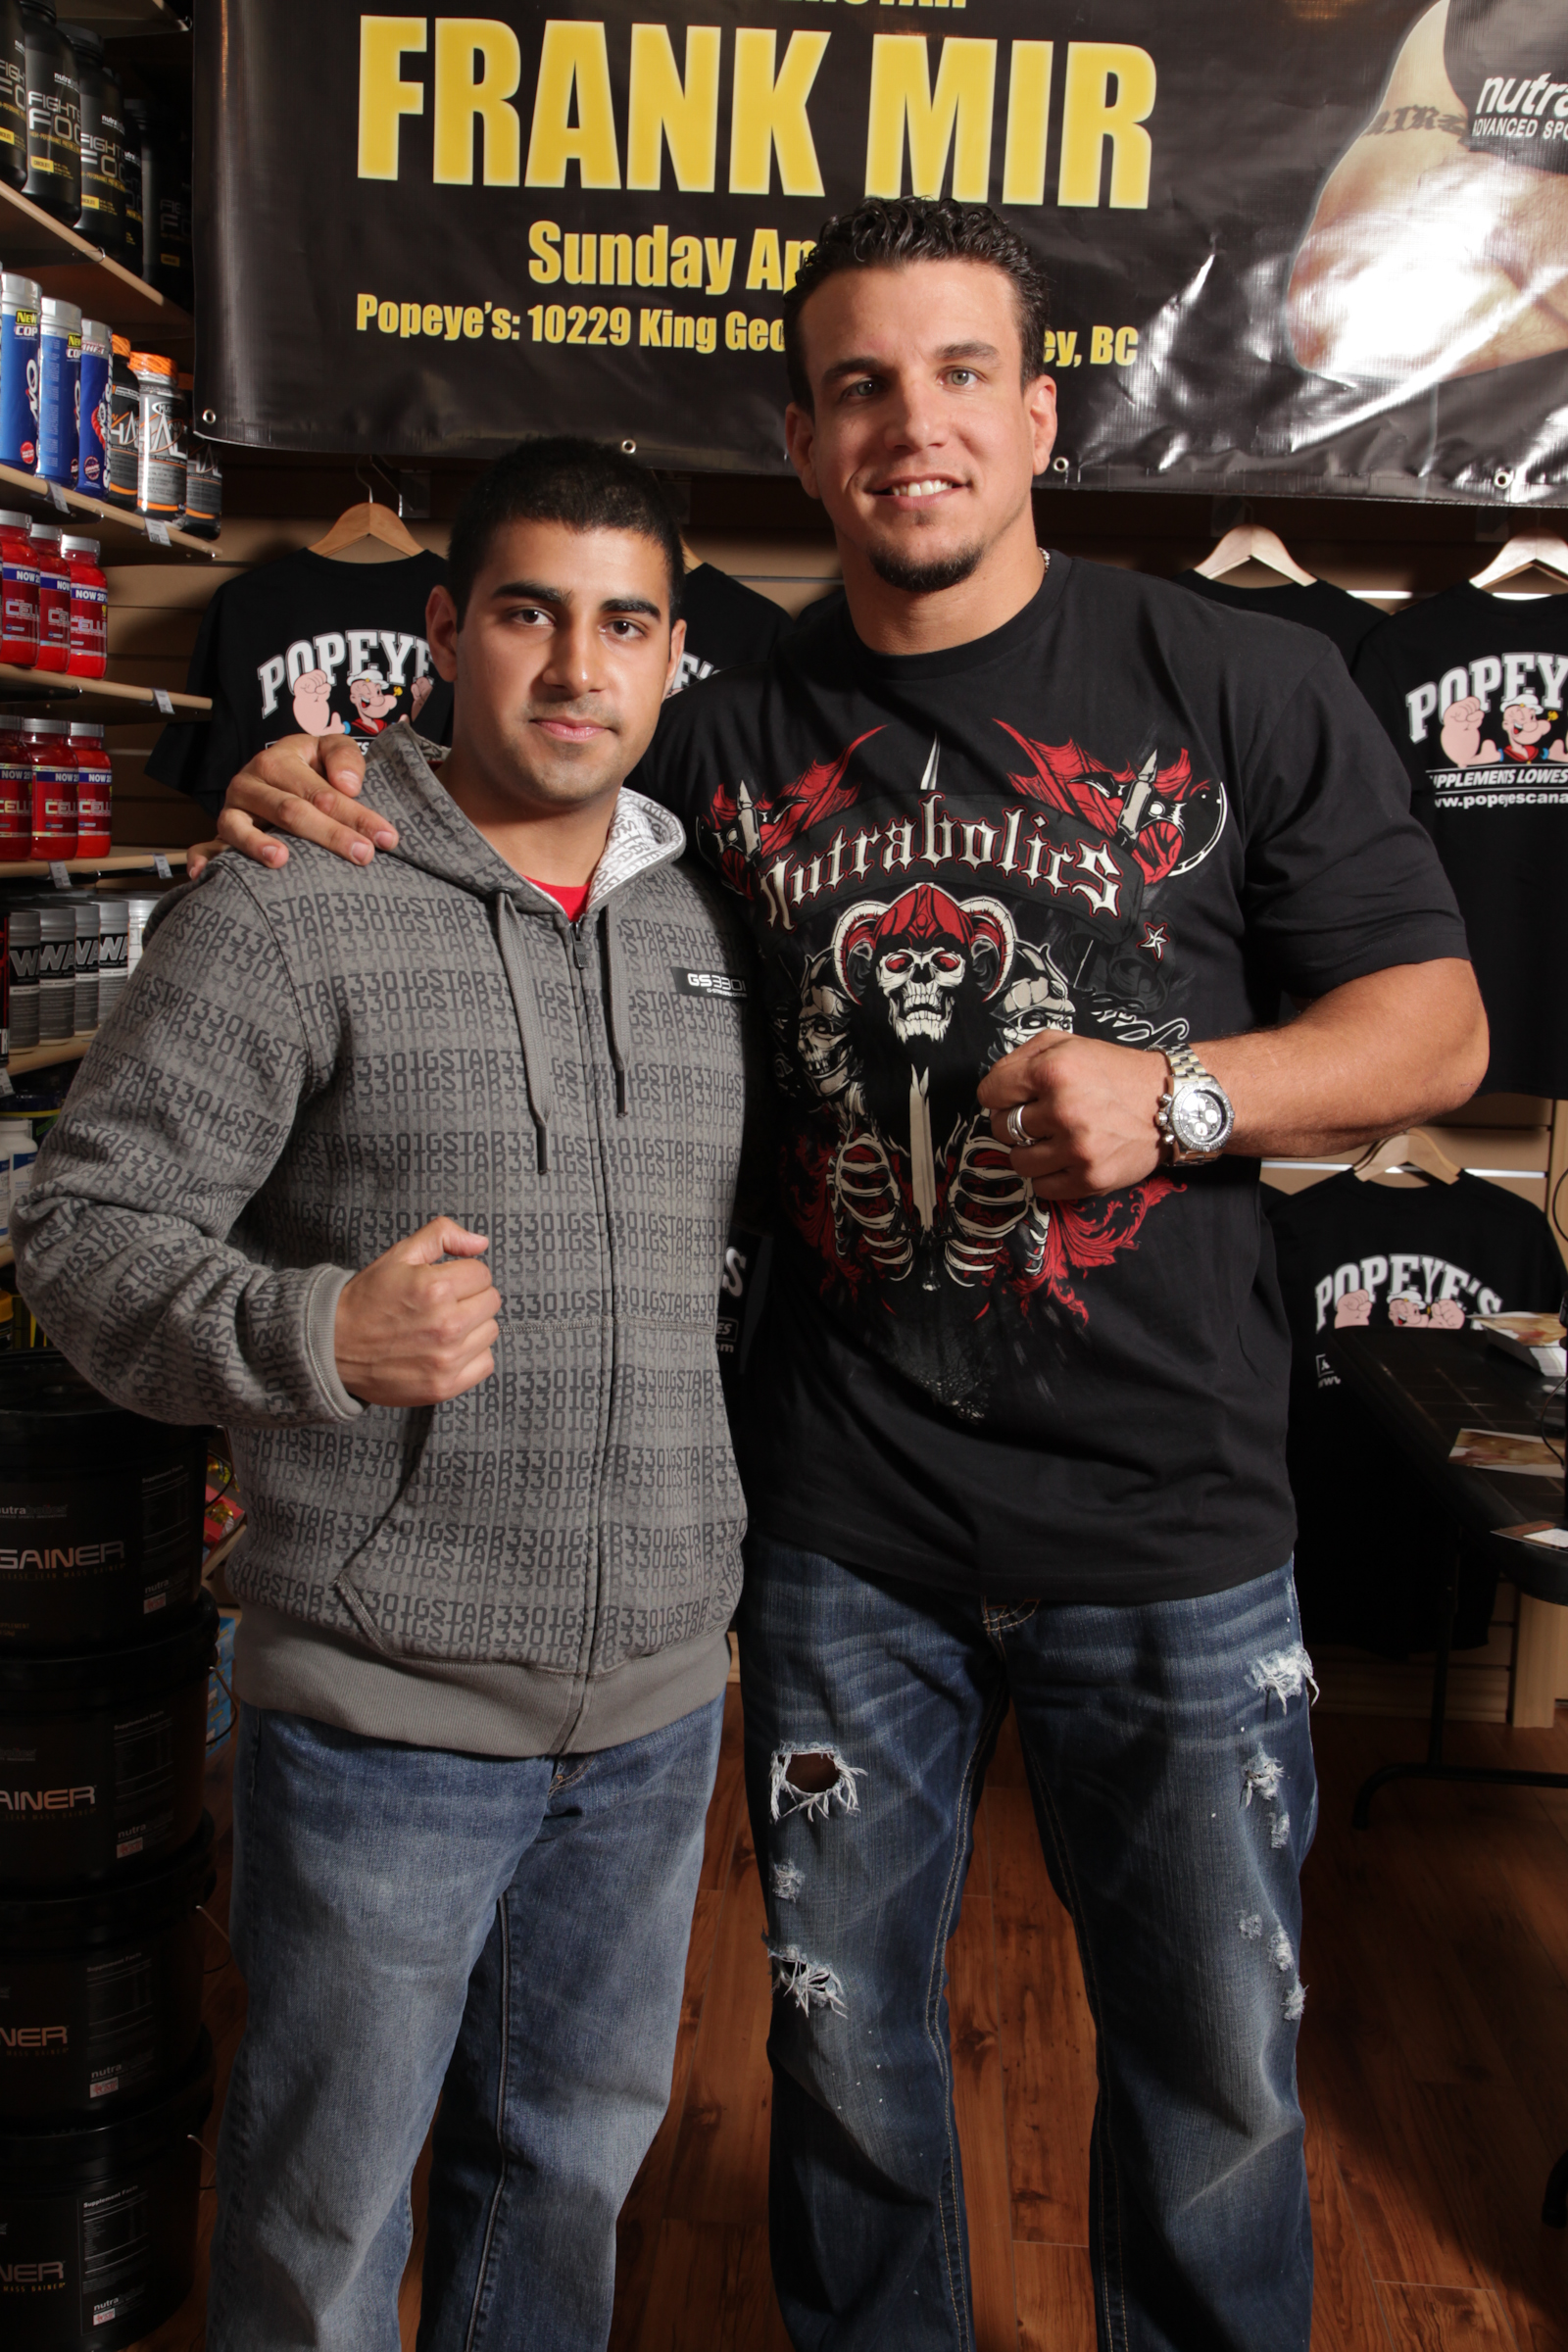 UFC Frank Mir Step and Repeat